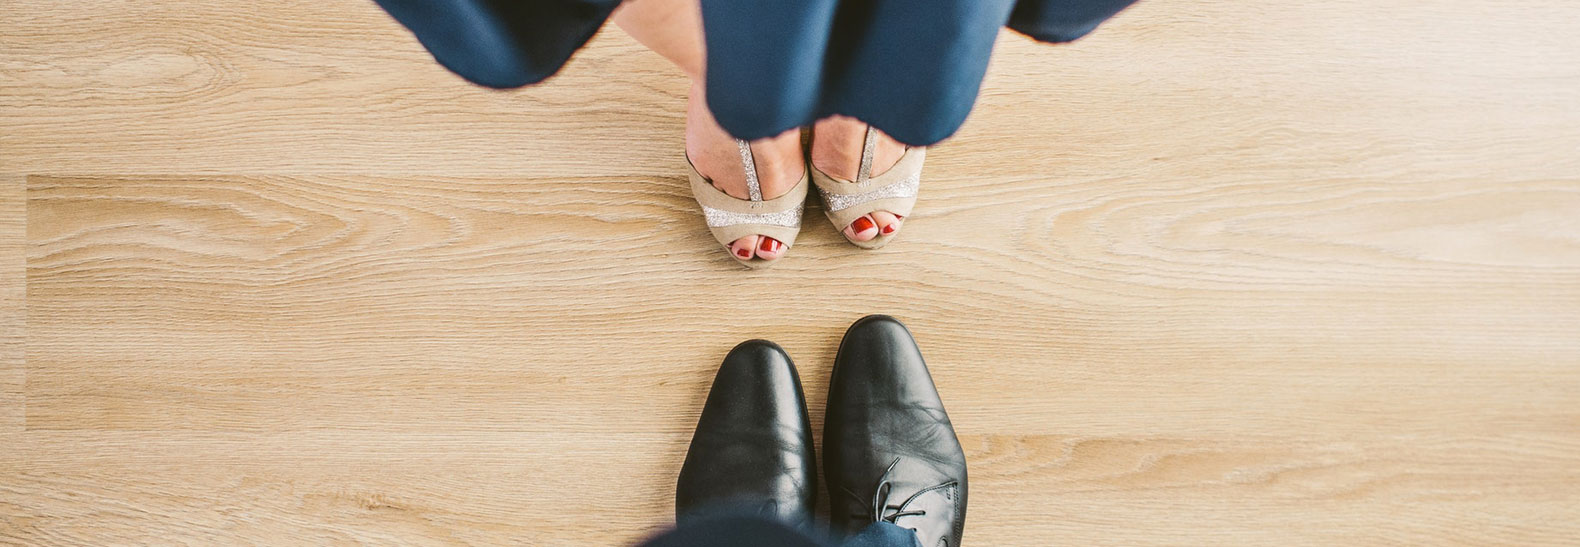 9 Dress Code Rules According to a Wedding Planner